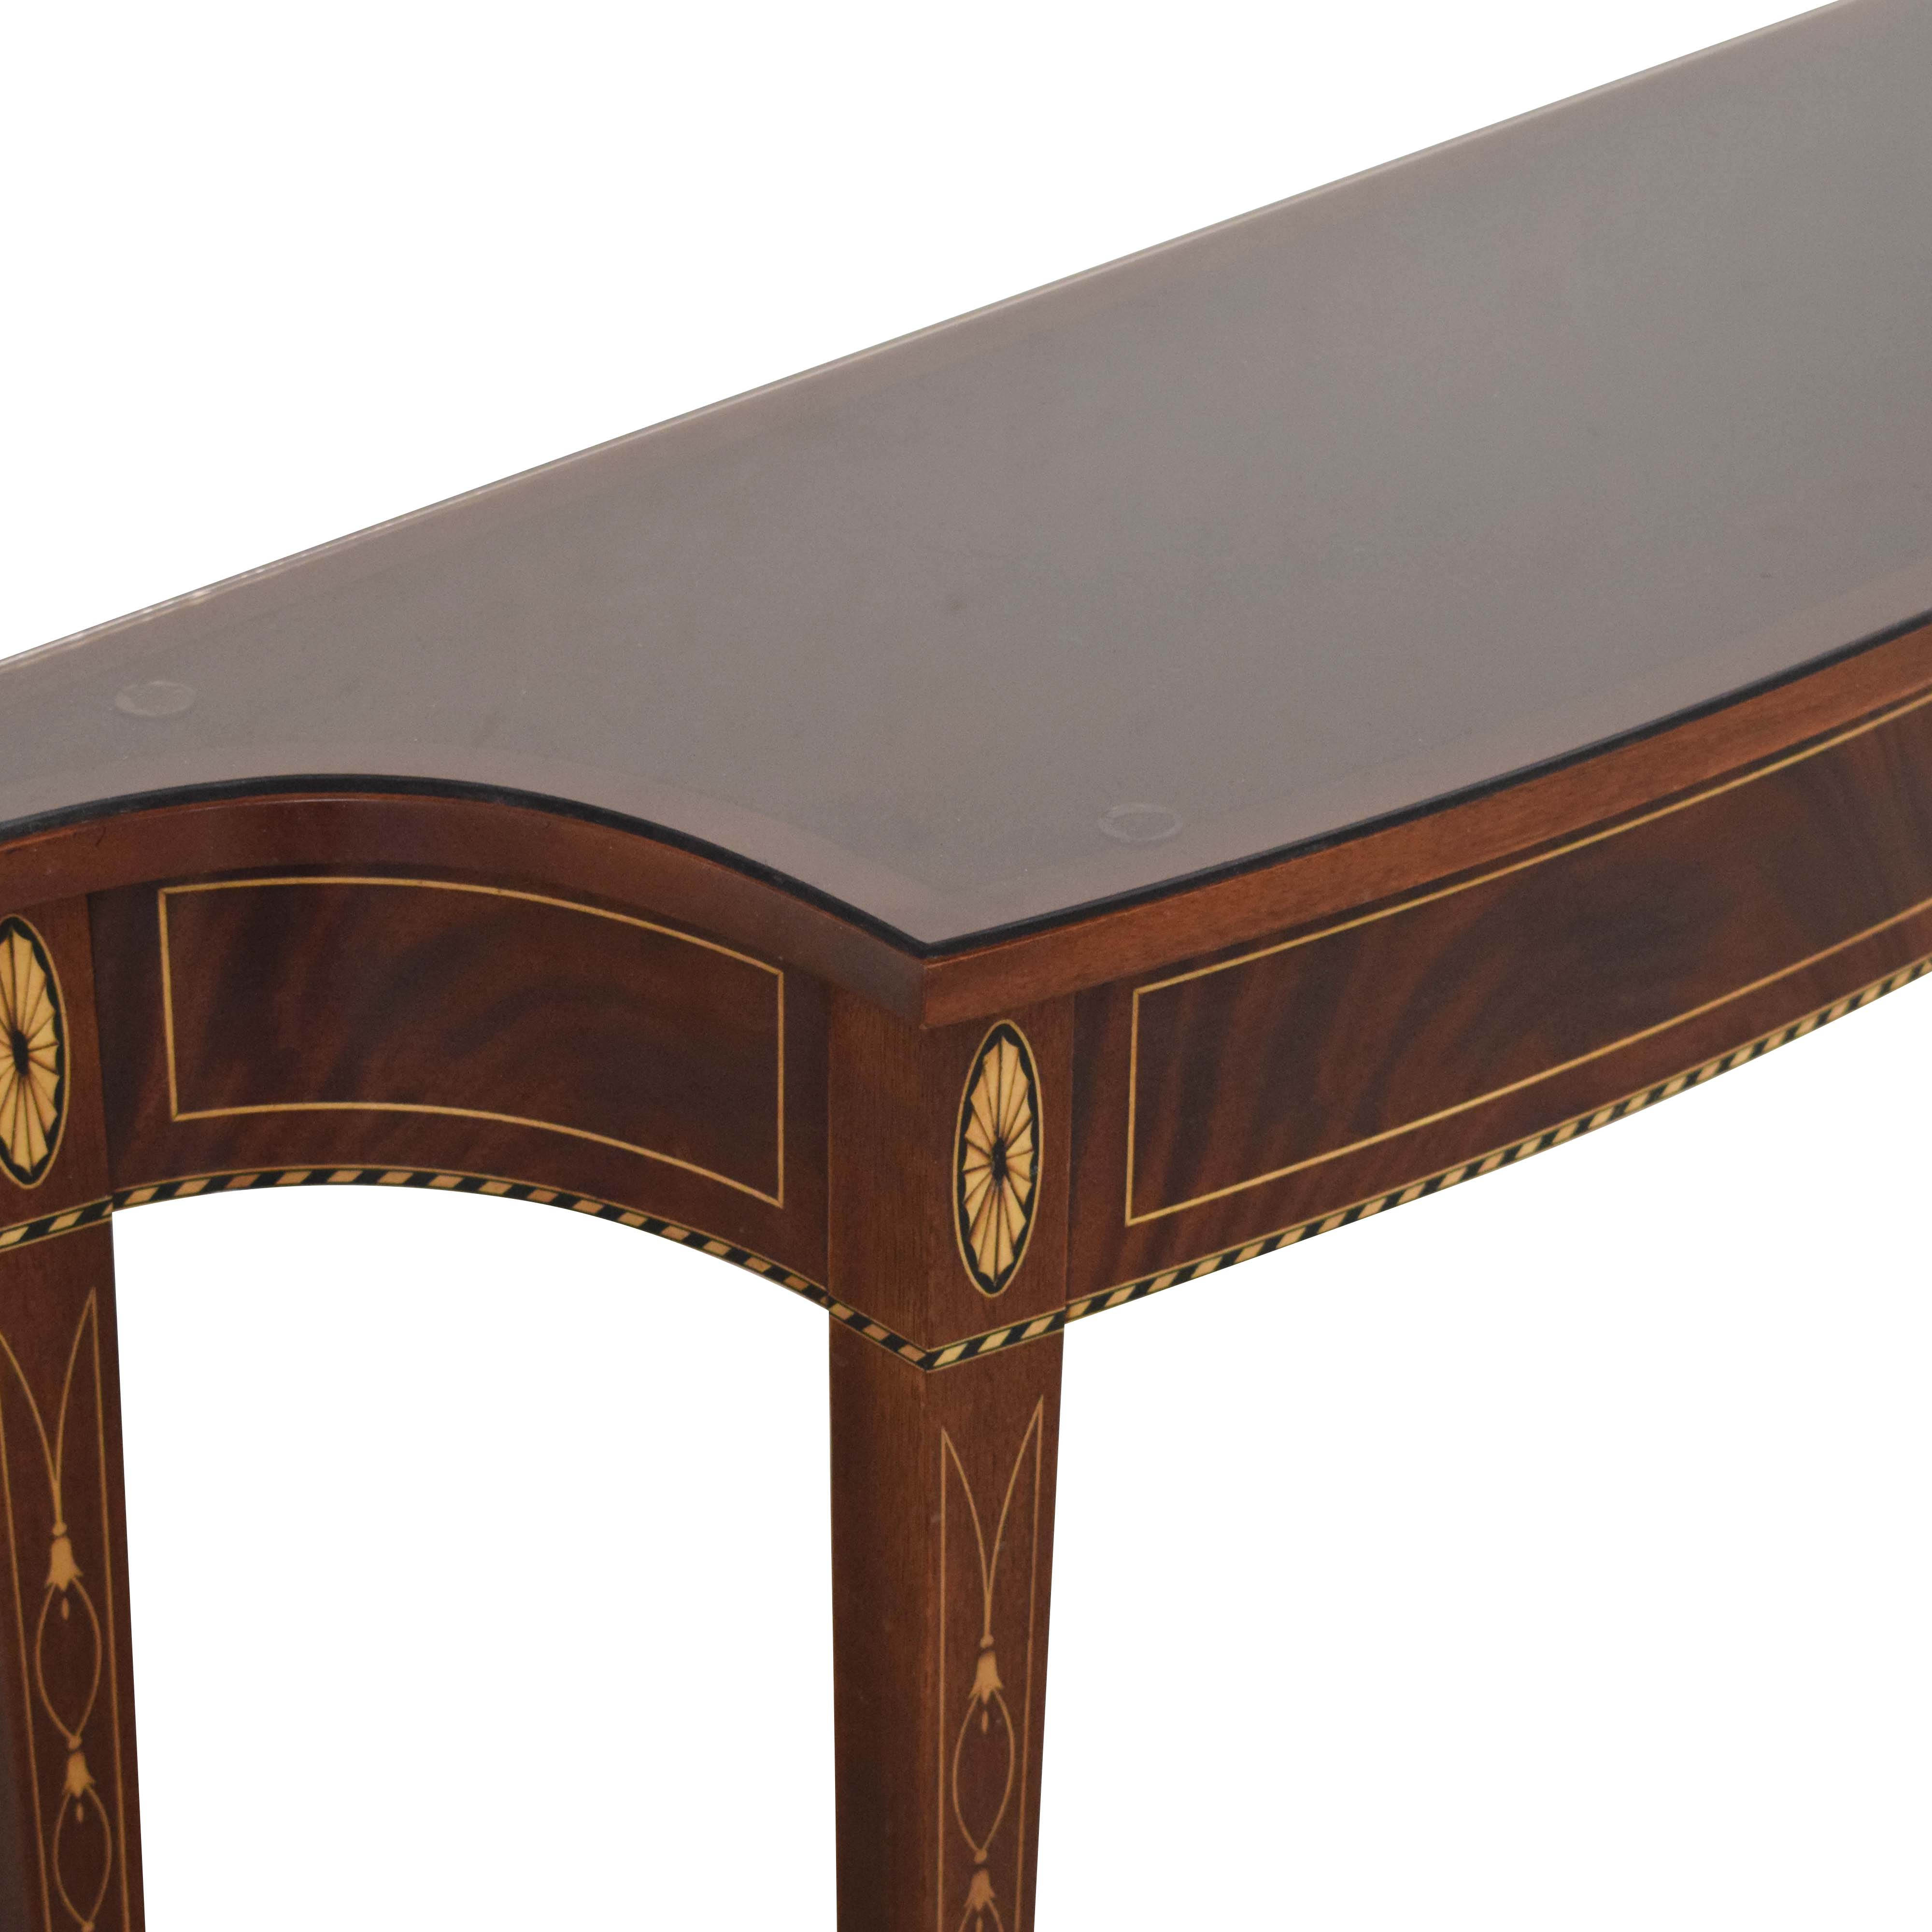 Stickley Furniture Stickley Furniture Entry Table used